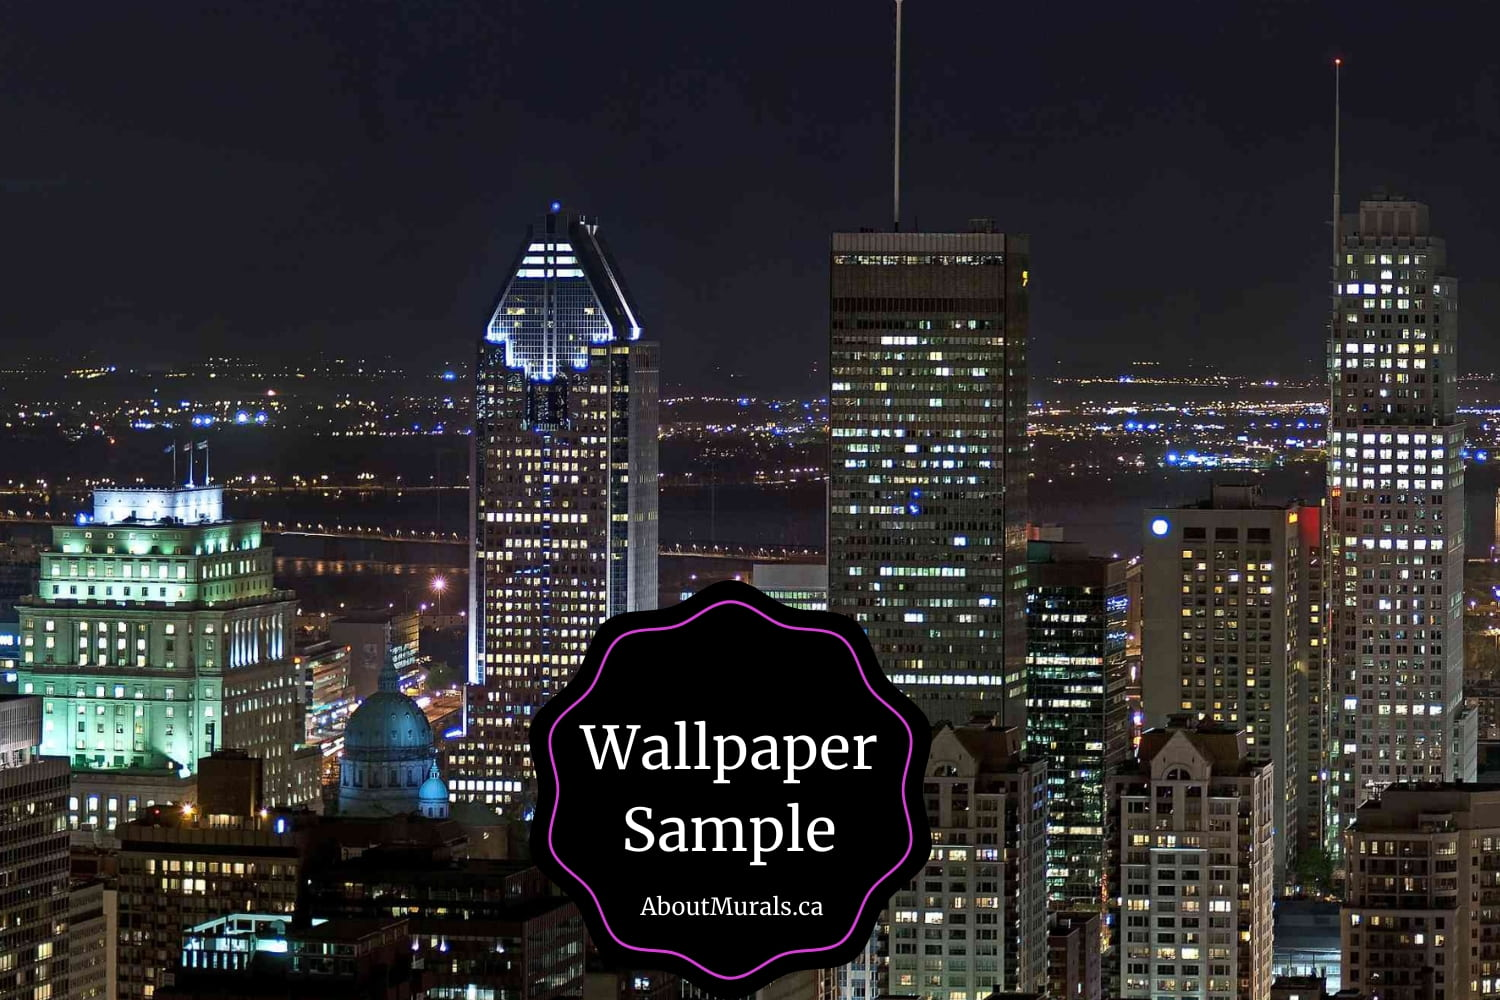 """Skyscrapers tower over downtown Montreal at night with the words """"Wallpaper Samples Available from AboutMurals.ca"""""""